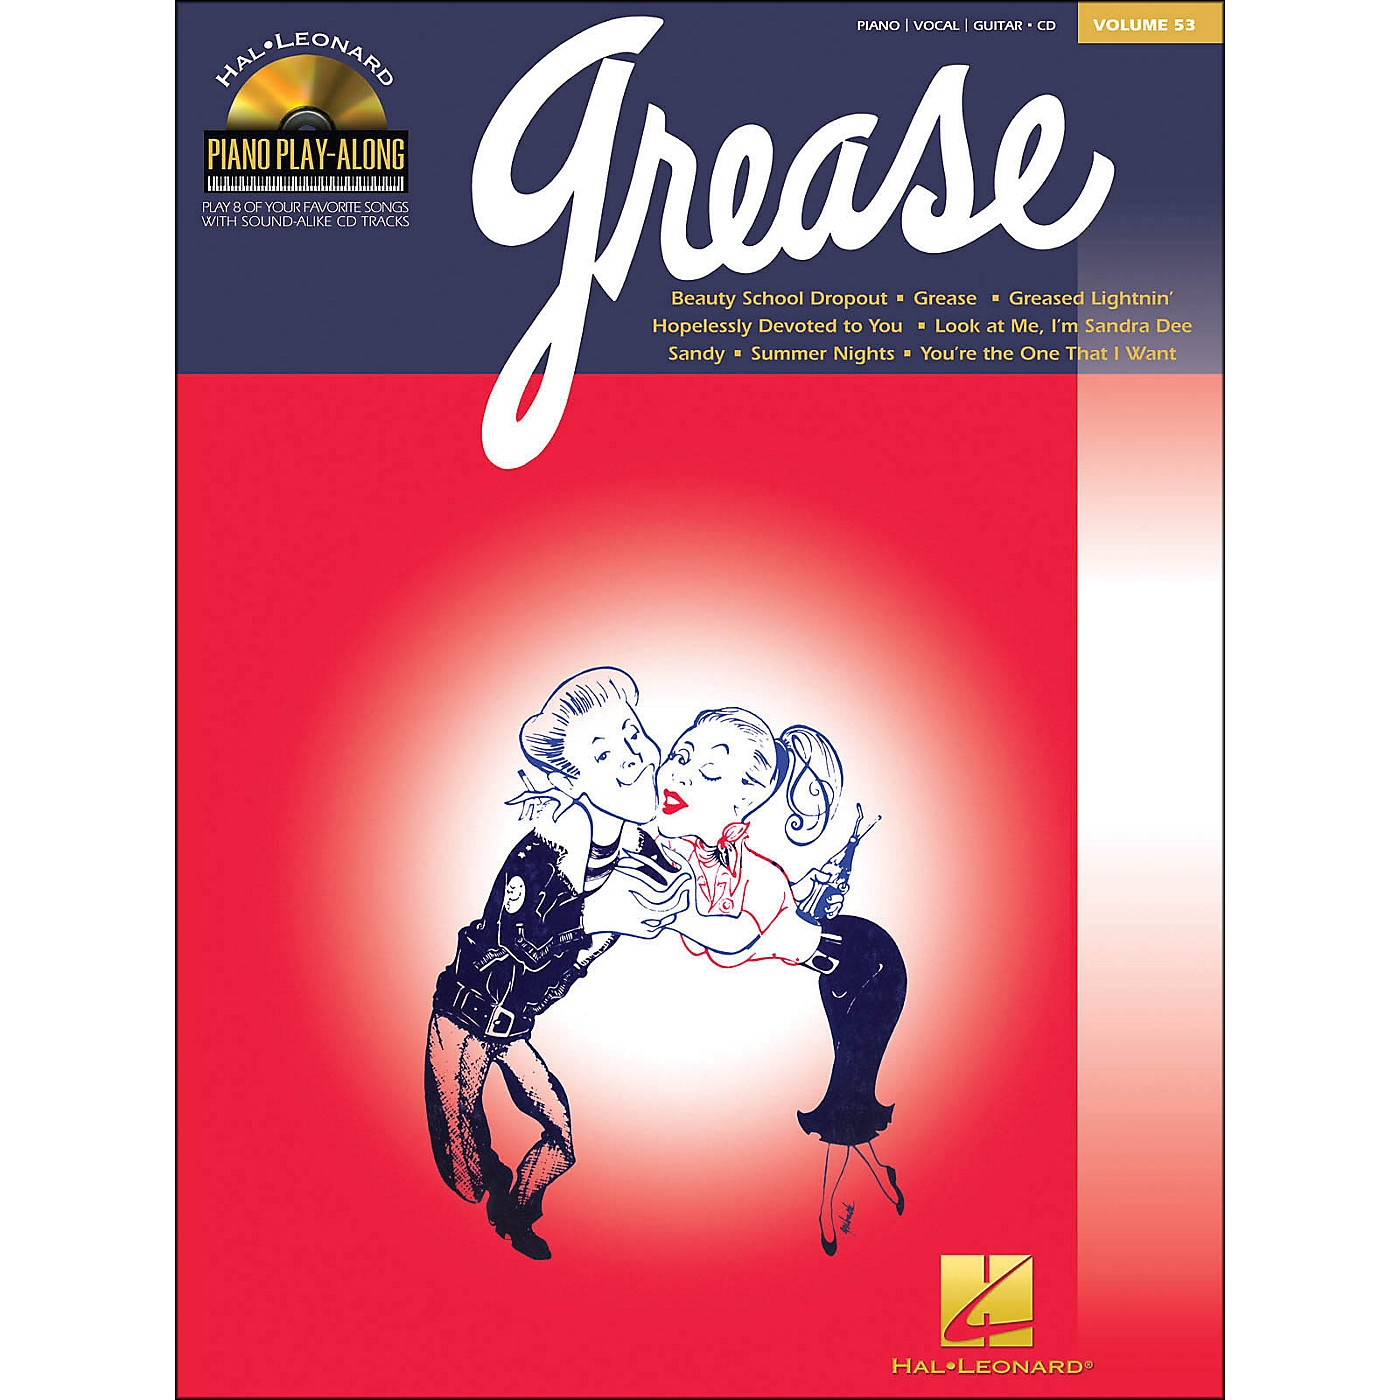 Hal Leonard Grease Piano Play-Along Volume 53 Book/CD arranged for piano, vocal, and guitar (P/V/G) thumbnail